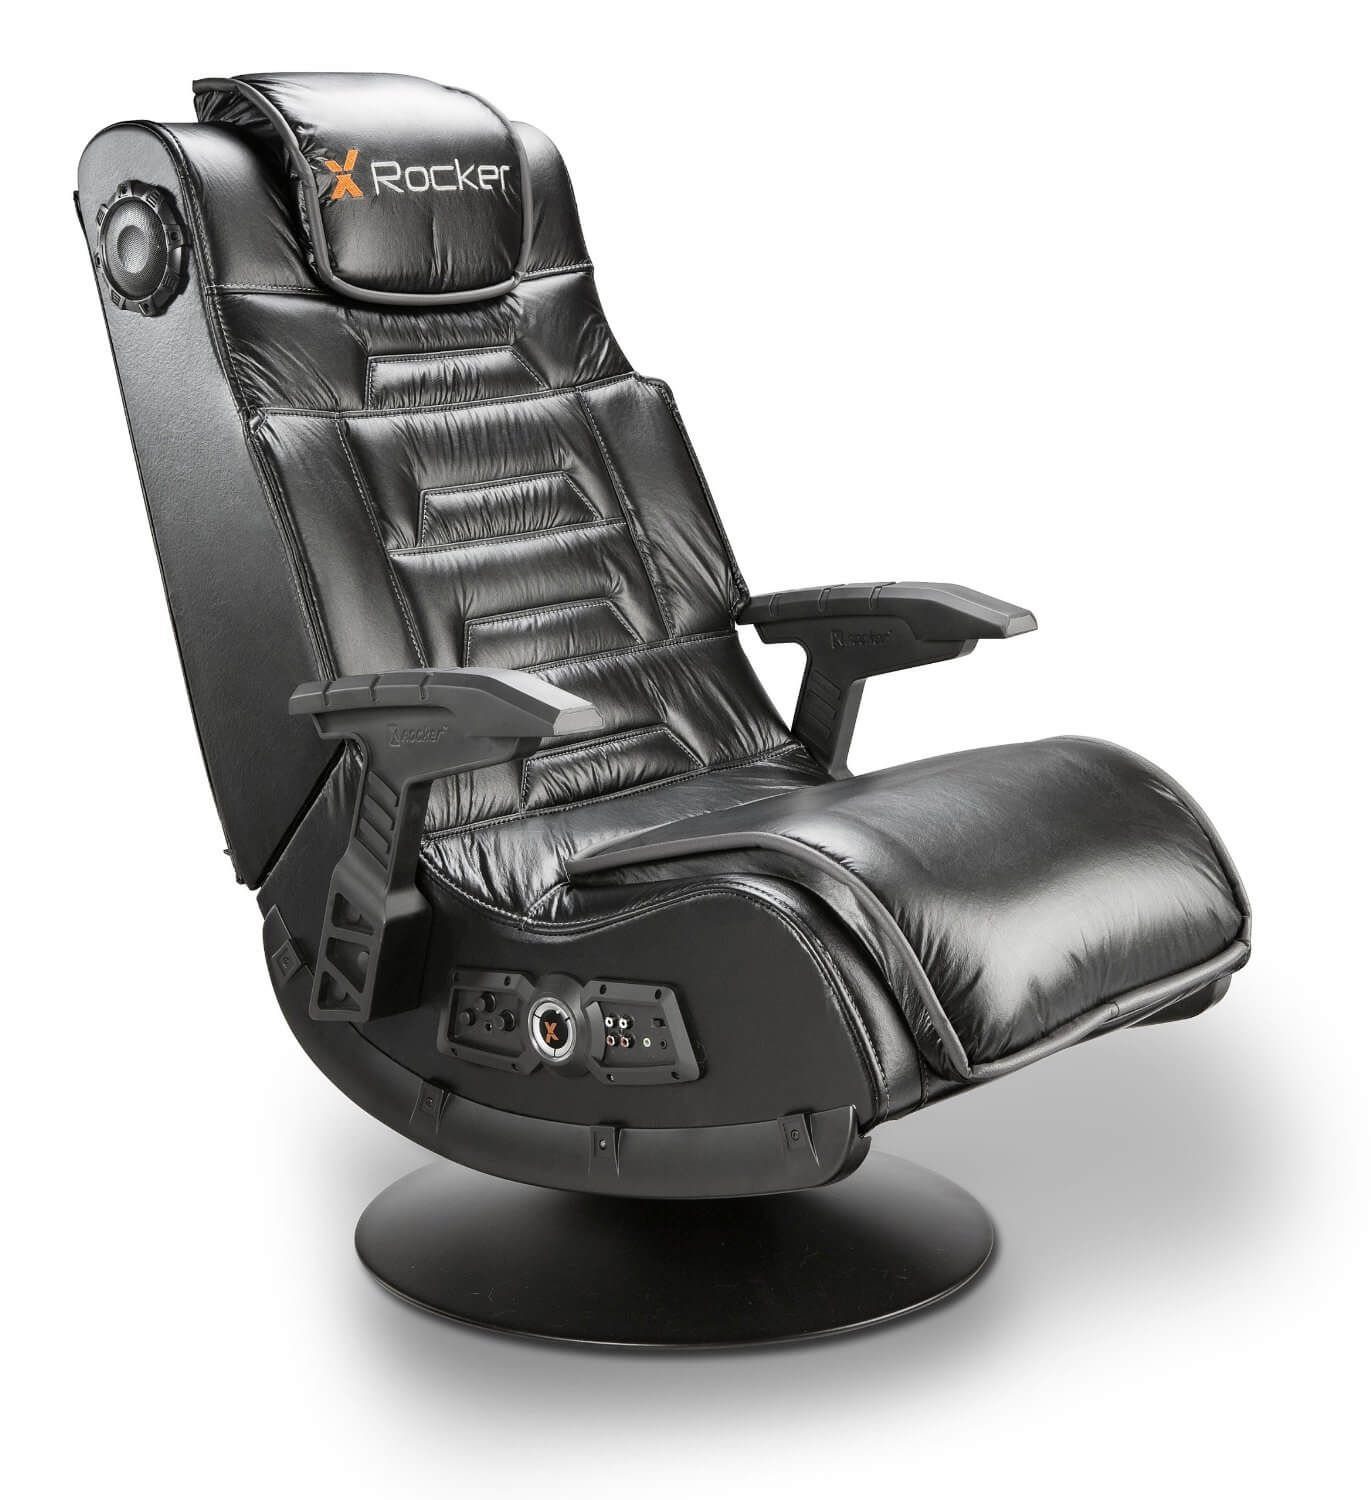 Gaming Sessel Konsole X Rocker 51396 Pro Series Is One Of The Best Gaming Chair From The